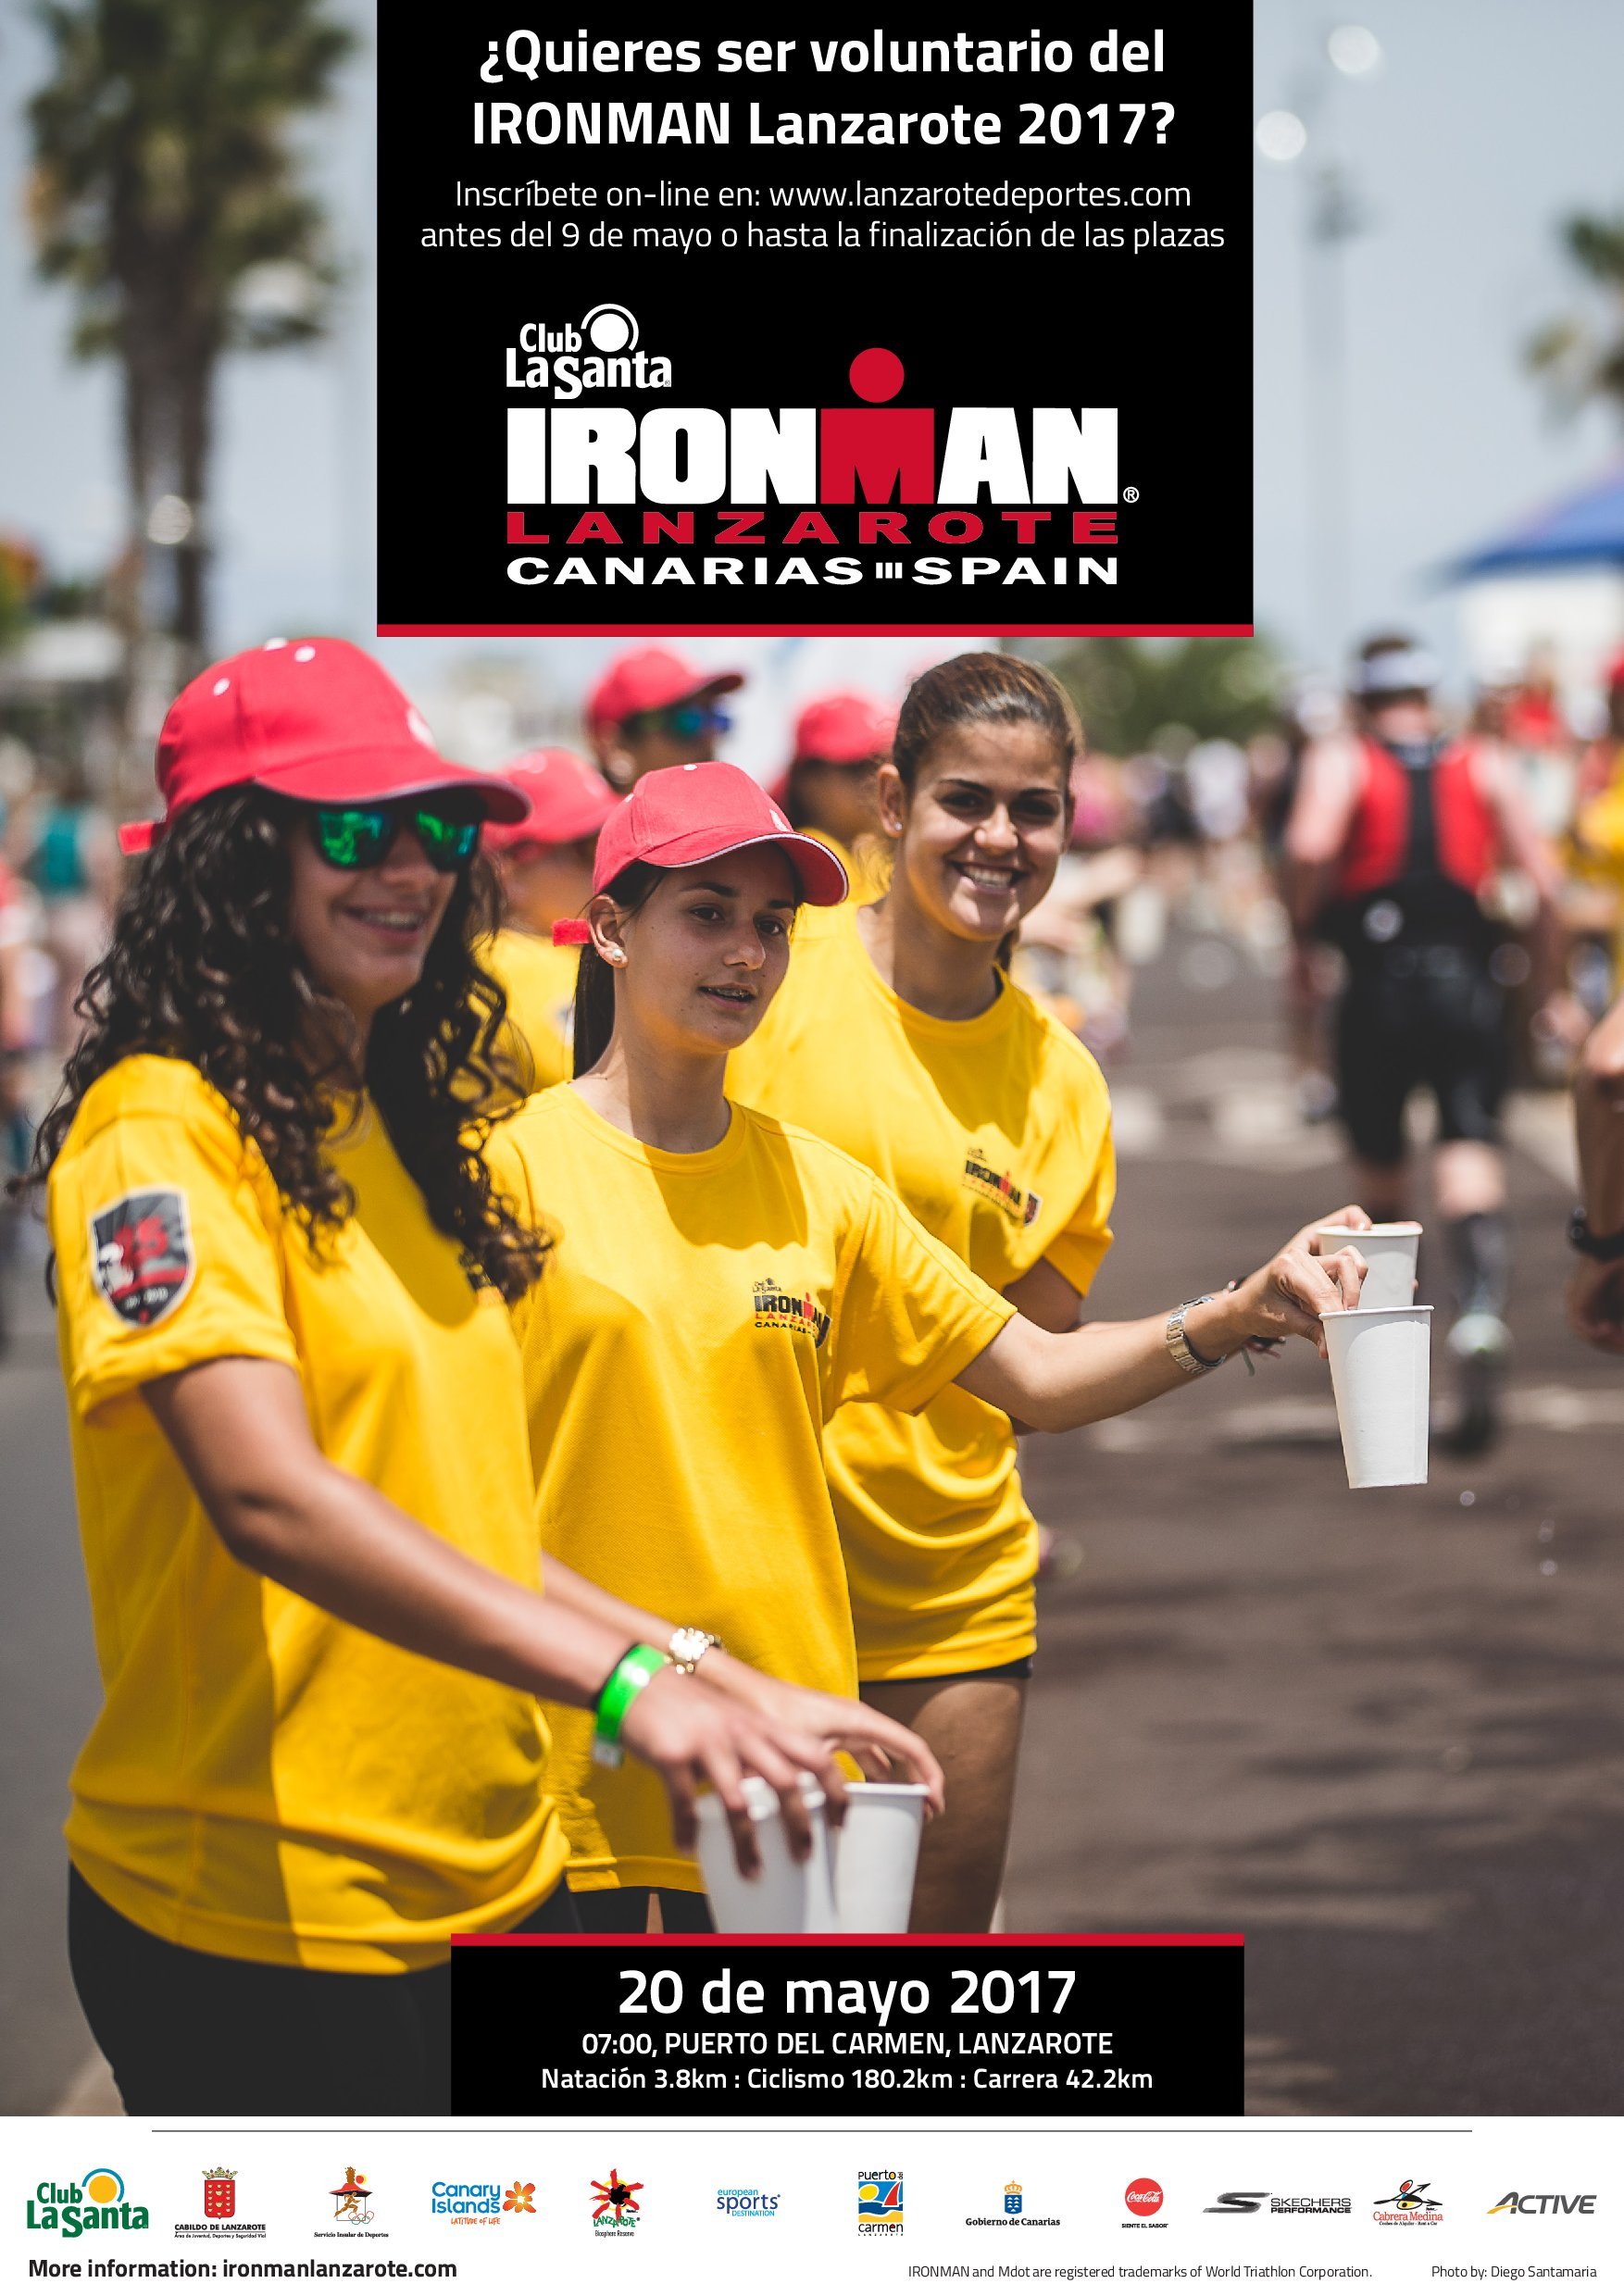 Ironman_Volunteers_2017-2